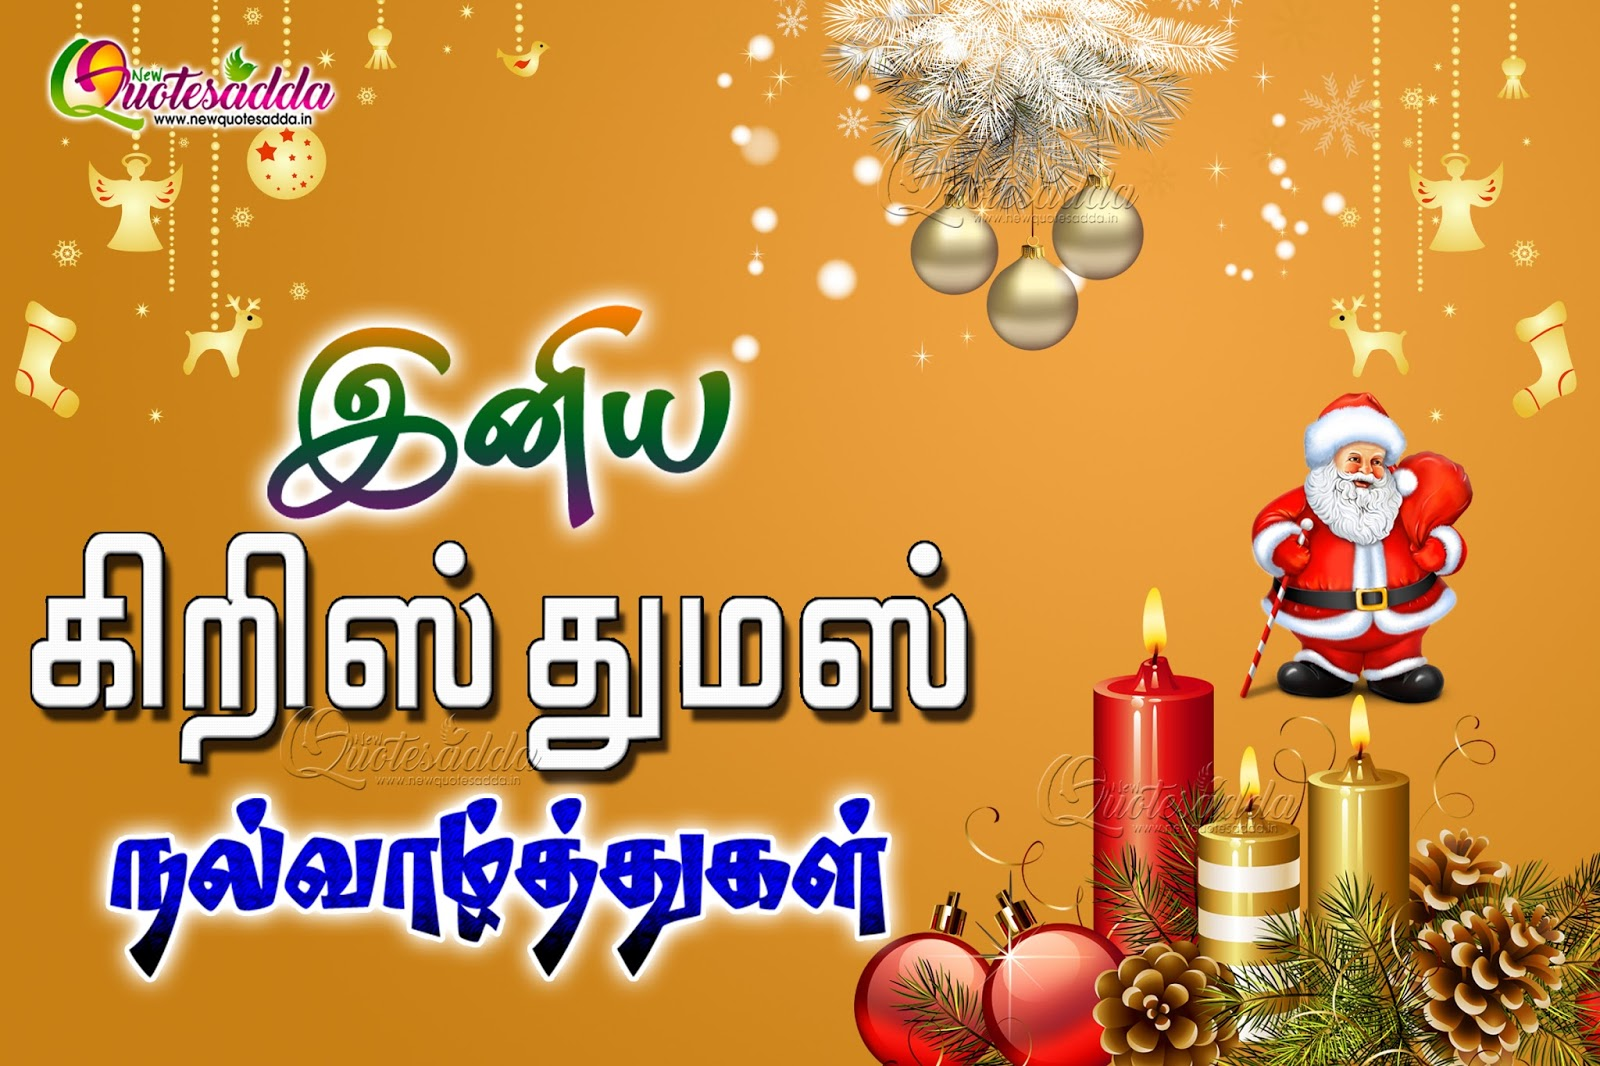 Merry christmas tamil quotes and greetings hd images for facebook merry christmas tamil quotes greetings ecards wishes hd m4hsunfo